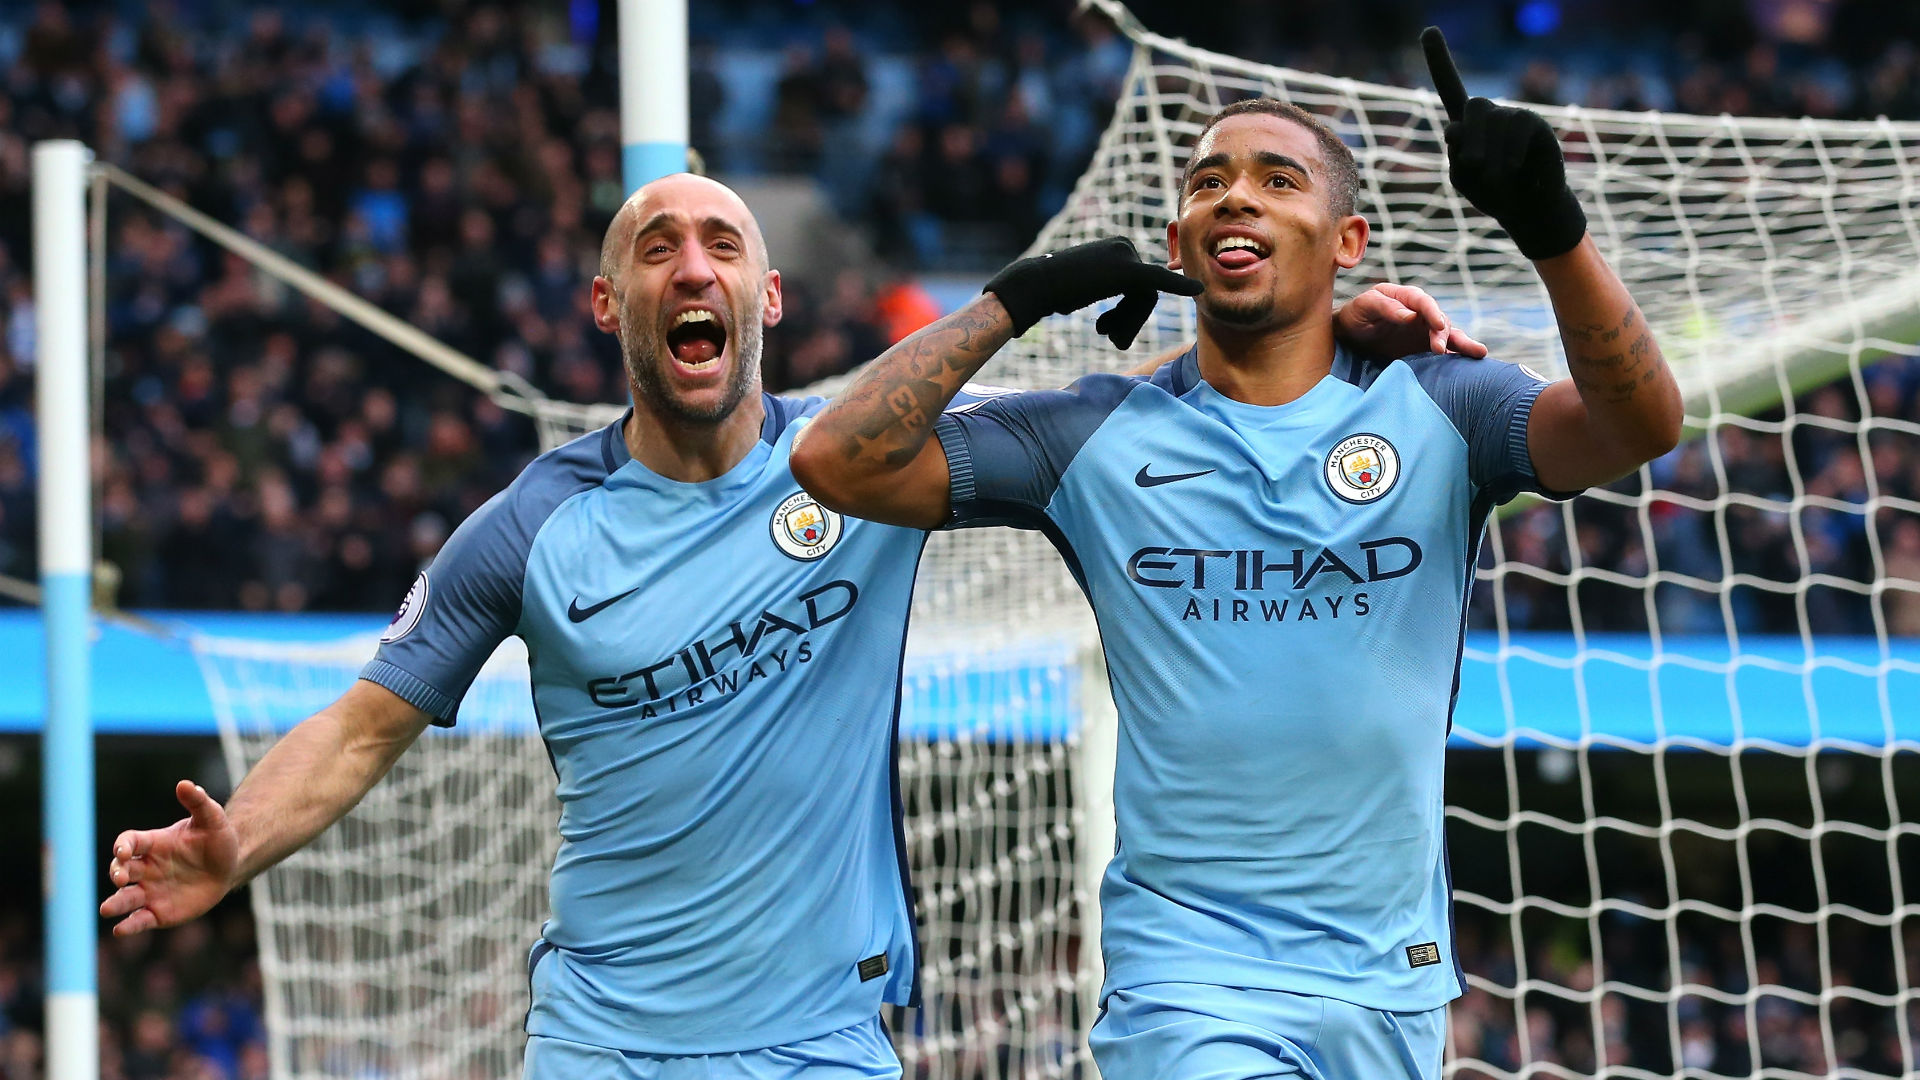 AFC Bournemouth v Manchester City Betting: Guardiola's men set to run riot on the south coast